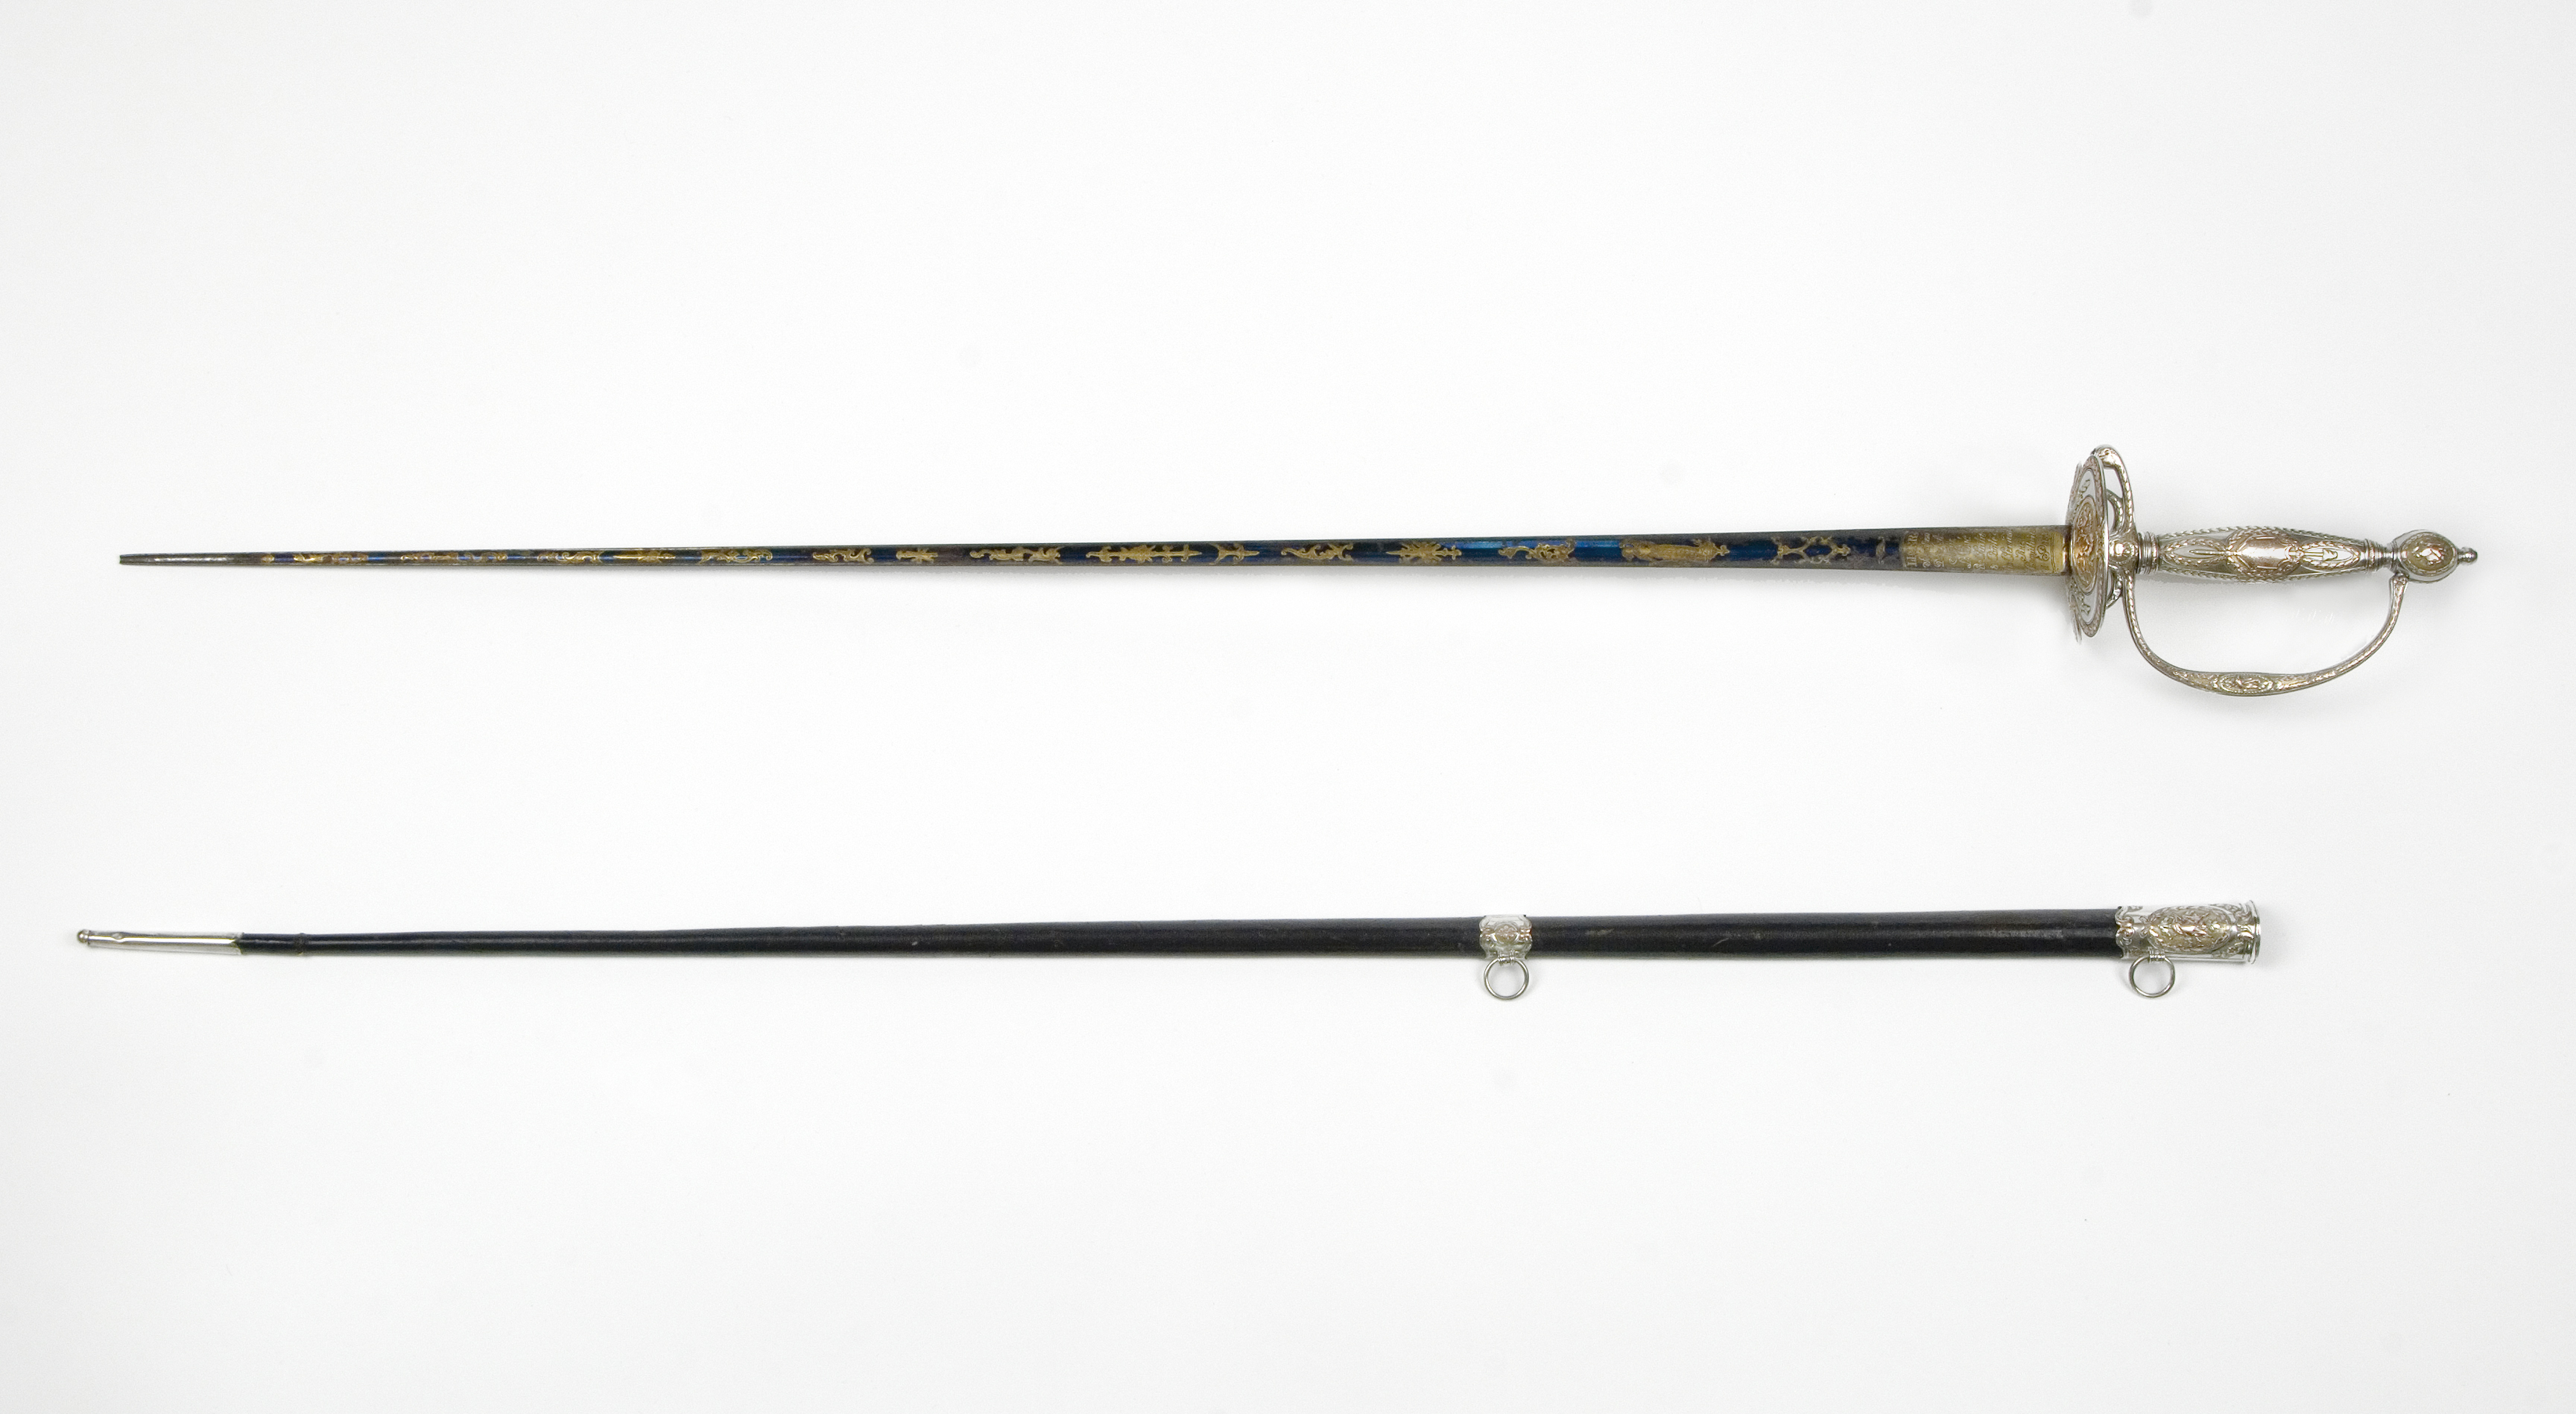 Tench Tilghman presentation sword and scabbard made by C. Liger, 1785